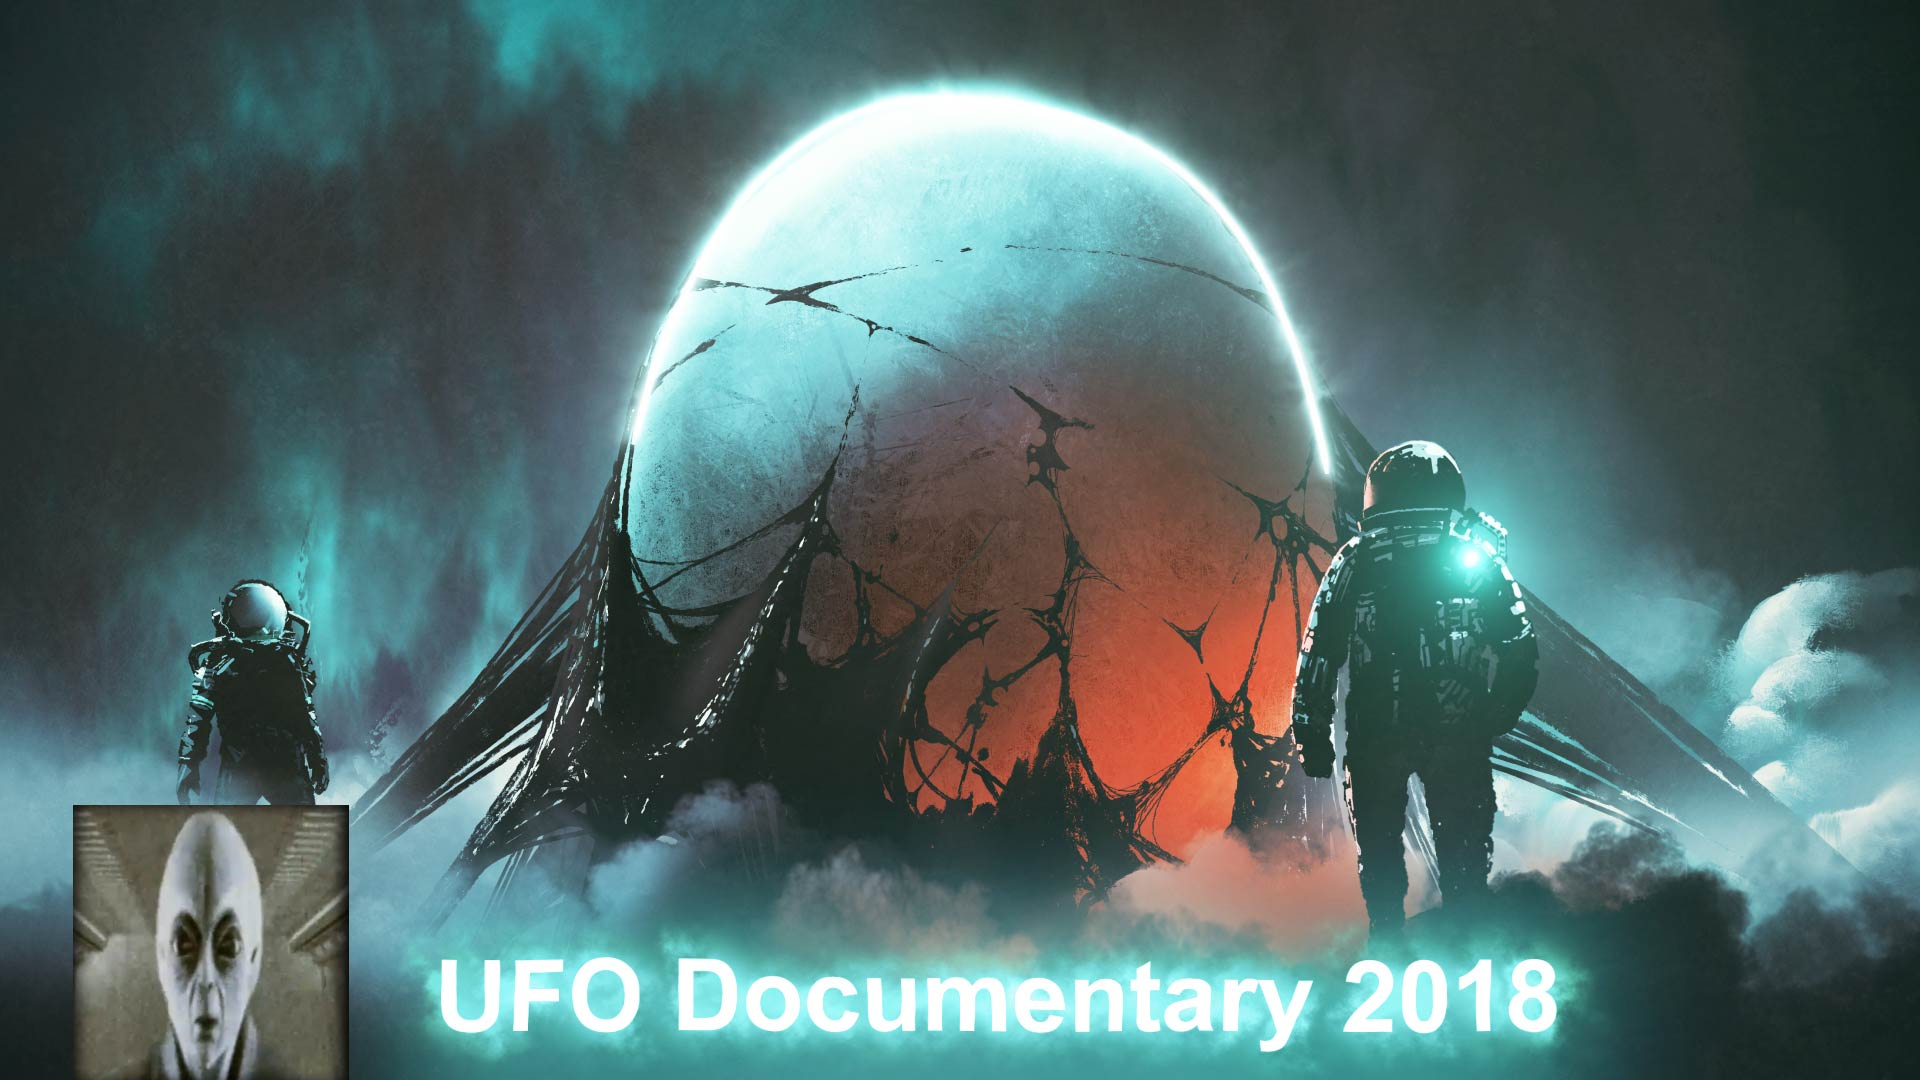 UFO Documentary August 11th 2018